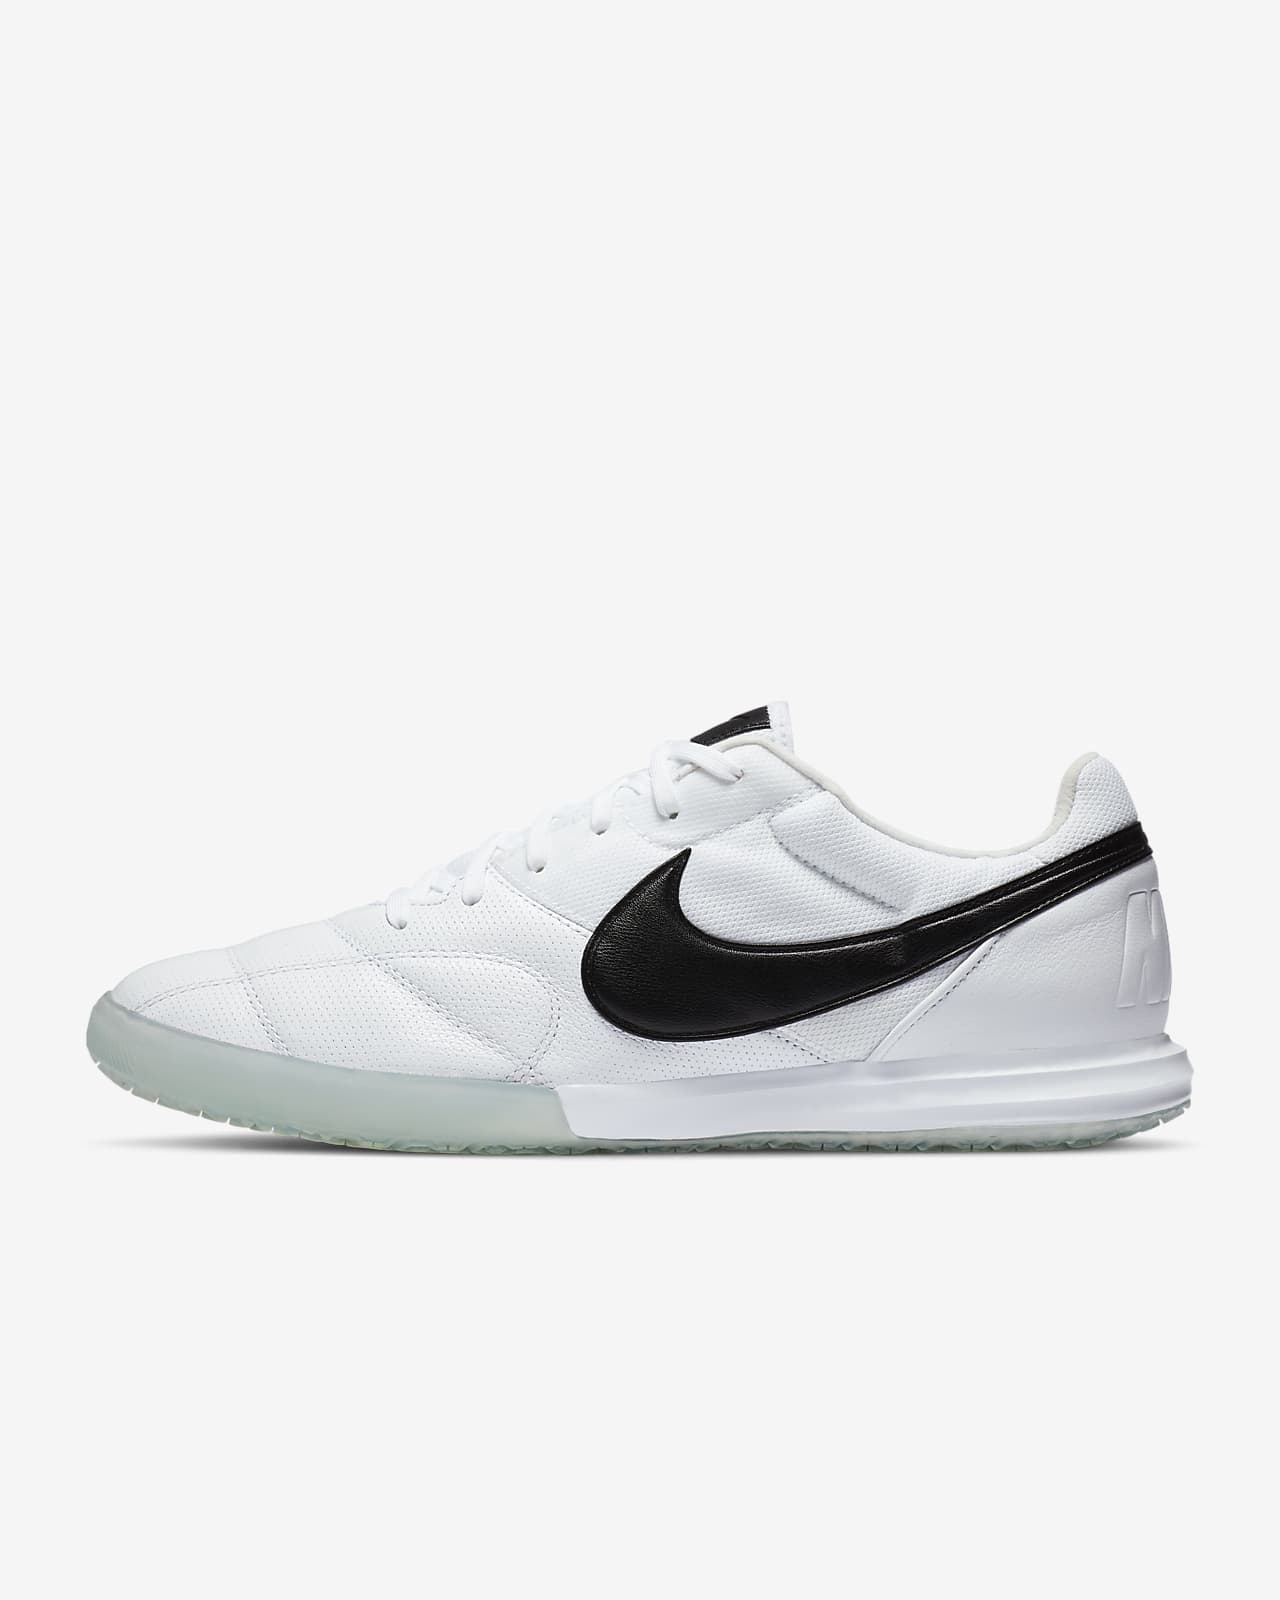 Extranjero meteorito Térmico  Nike Premier 2 Sala IC Indoor/Court Football Shoe. Nike LU